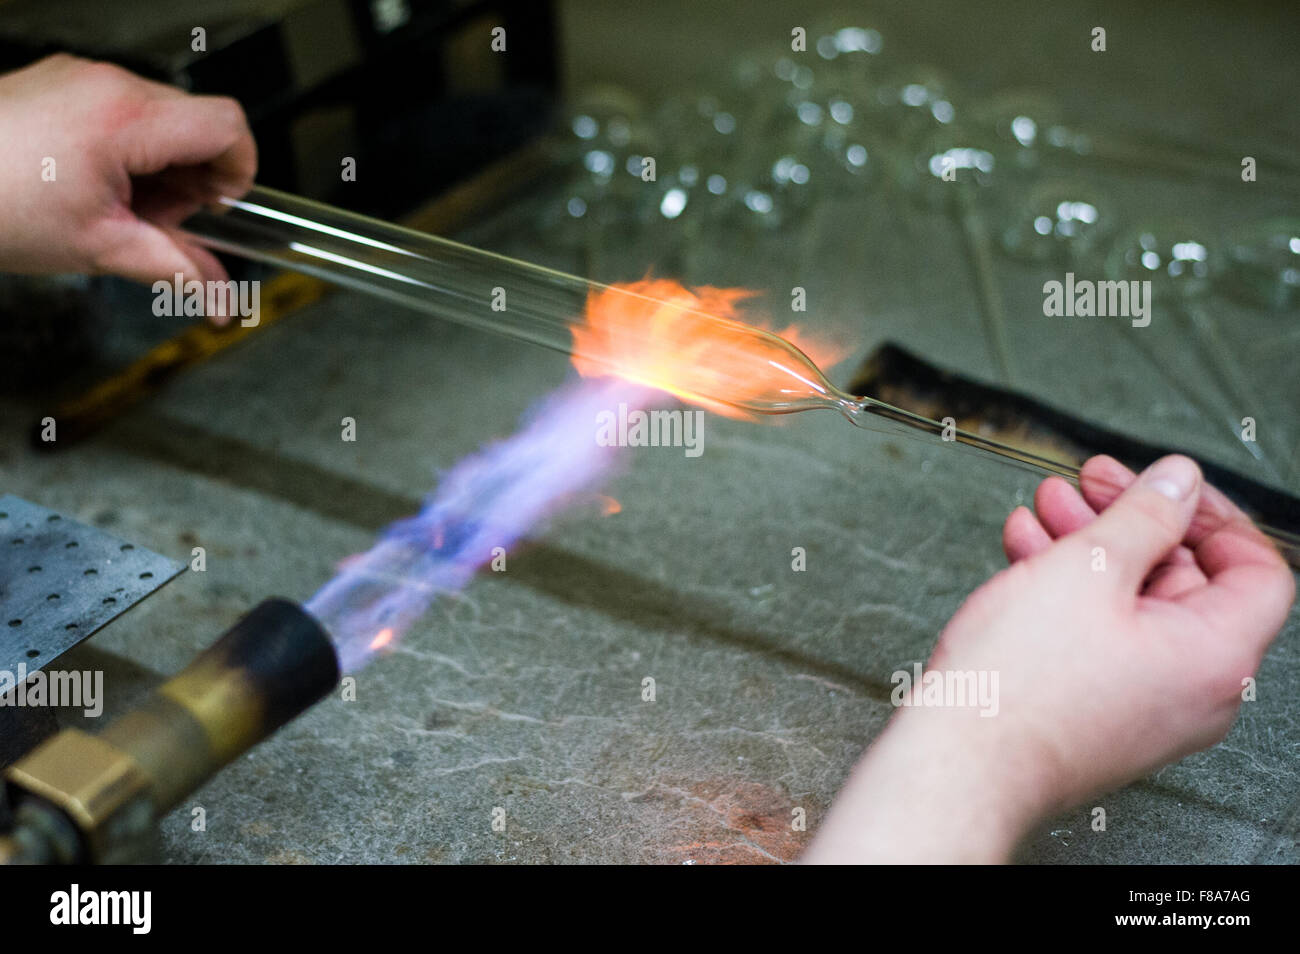 Piotrkow Trybunalski, Poland. 7th December, 2015. Worker heats piece of glass in order to form a glass ball at 'Szkło - Stock Image